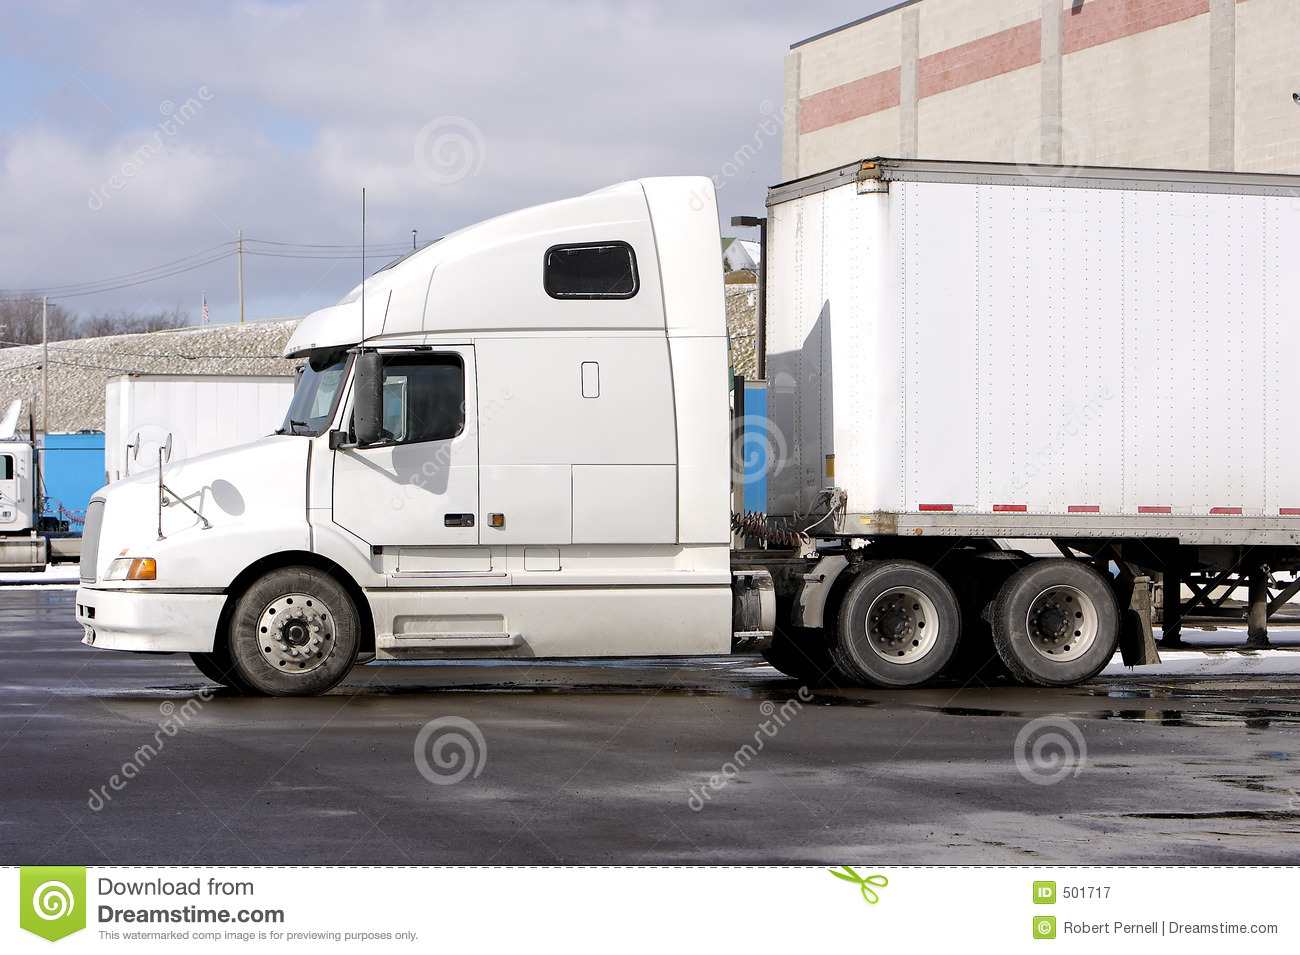 Tractor Trailer Stock : Tractor trailer truck royalty free stock photography